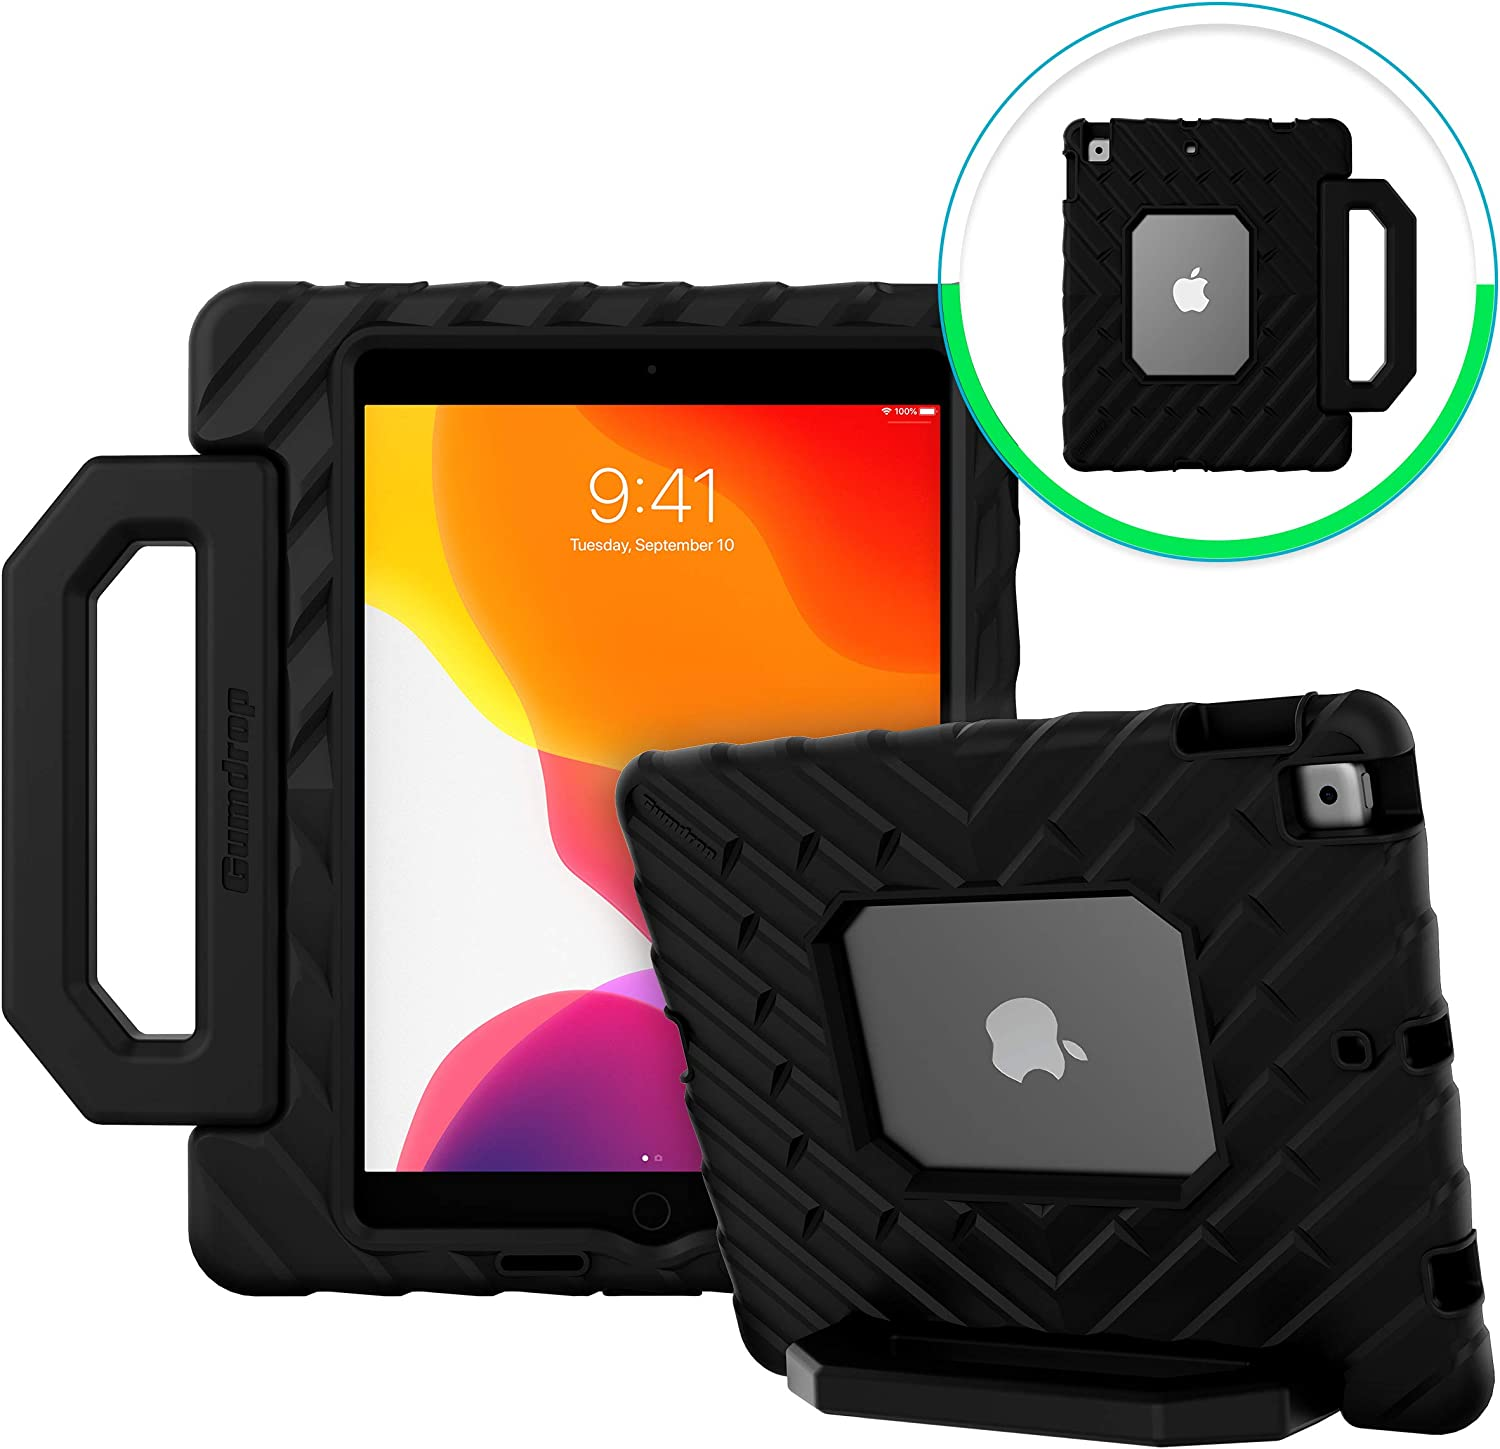 GumDrop FoamTech Case Designed for The New Apple iPad 10.2 7th Gen (2019) Tablet Commercial, Business and Office Essentials- Black, Rugged, Shock Absorbing, Extreme Drop Protection (02A002E01-0)